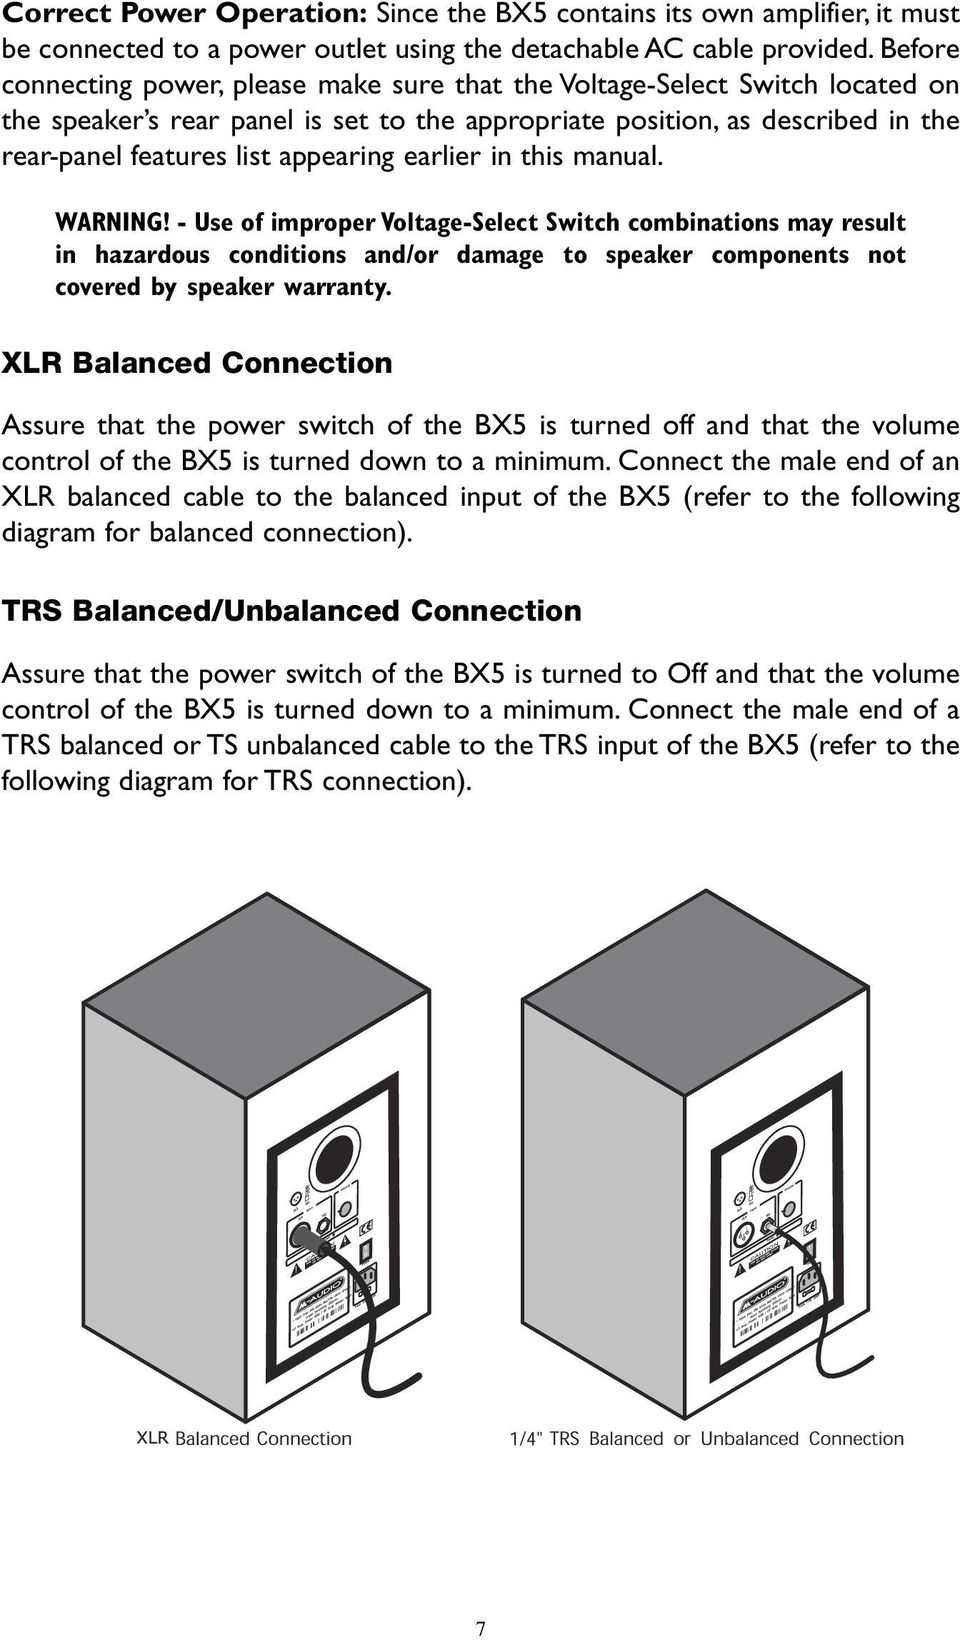 Studiophile Bx5 Users Manual Pdf To Usb Also Trs Jack Wiring Diagram For 1 4 Connection 7 Earlier In This Warning Use Of Improper Voltage Select Switch Combinations